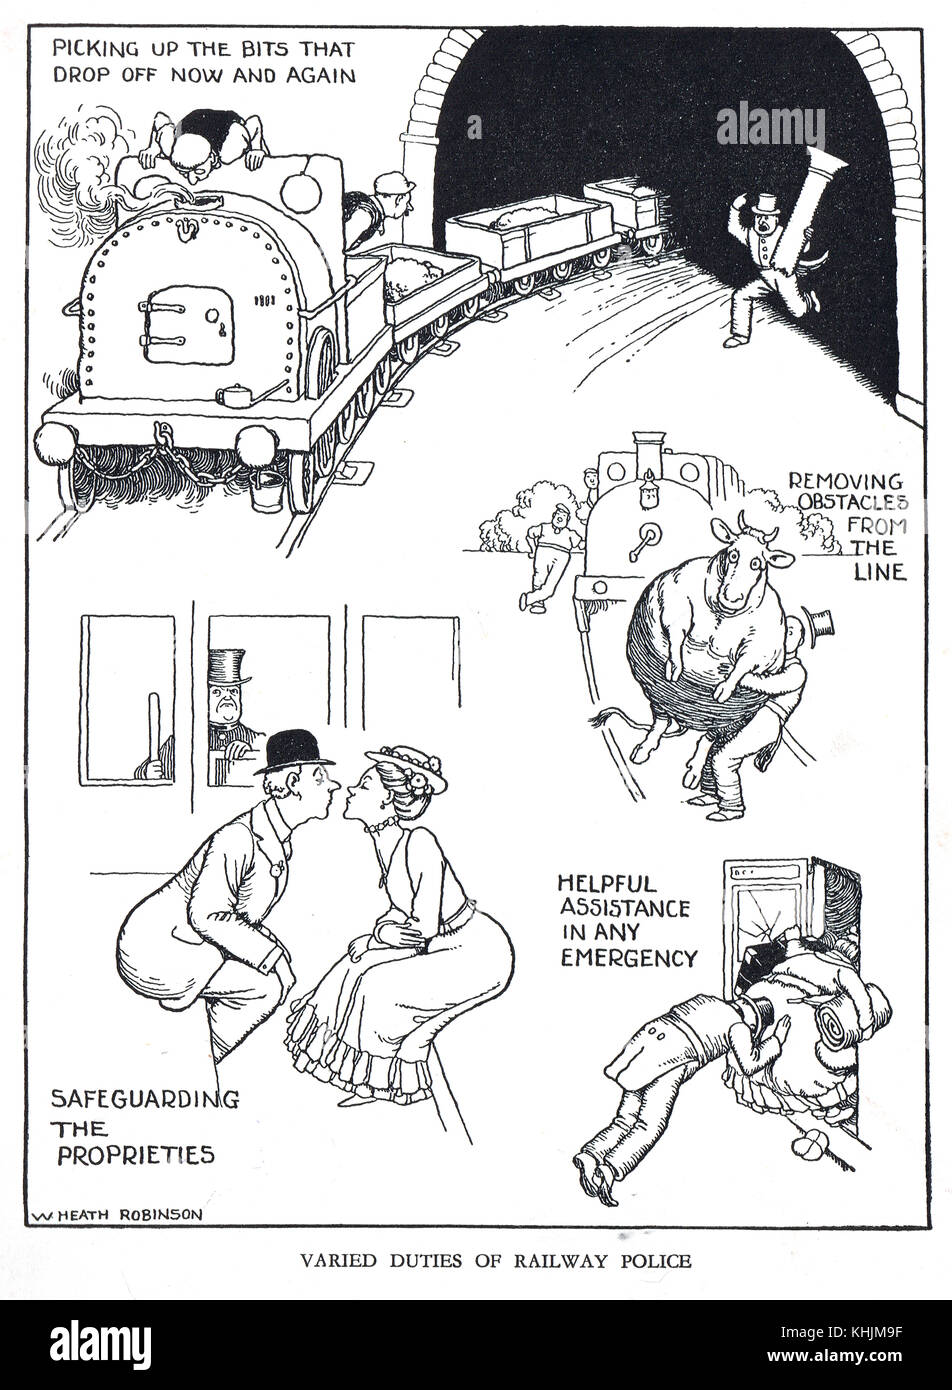 Varied Duties of Railway Police, Cartoon by William Heath Robinson - Stock Image